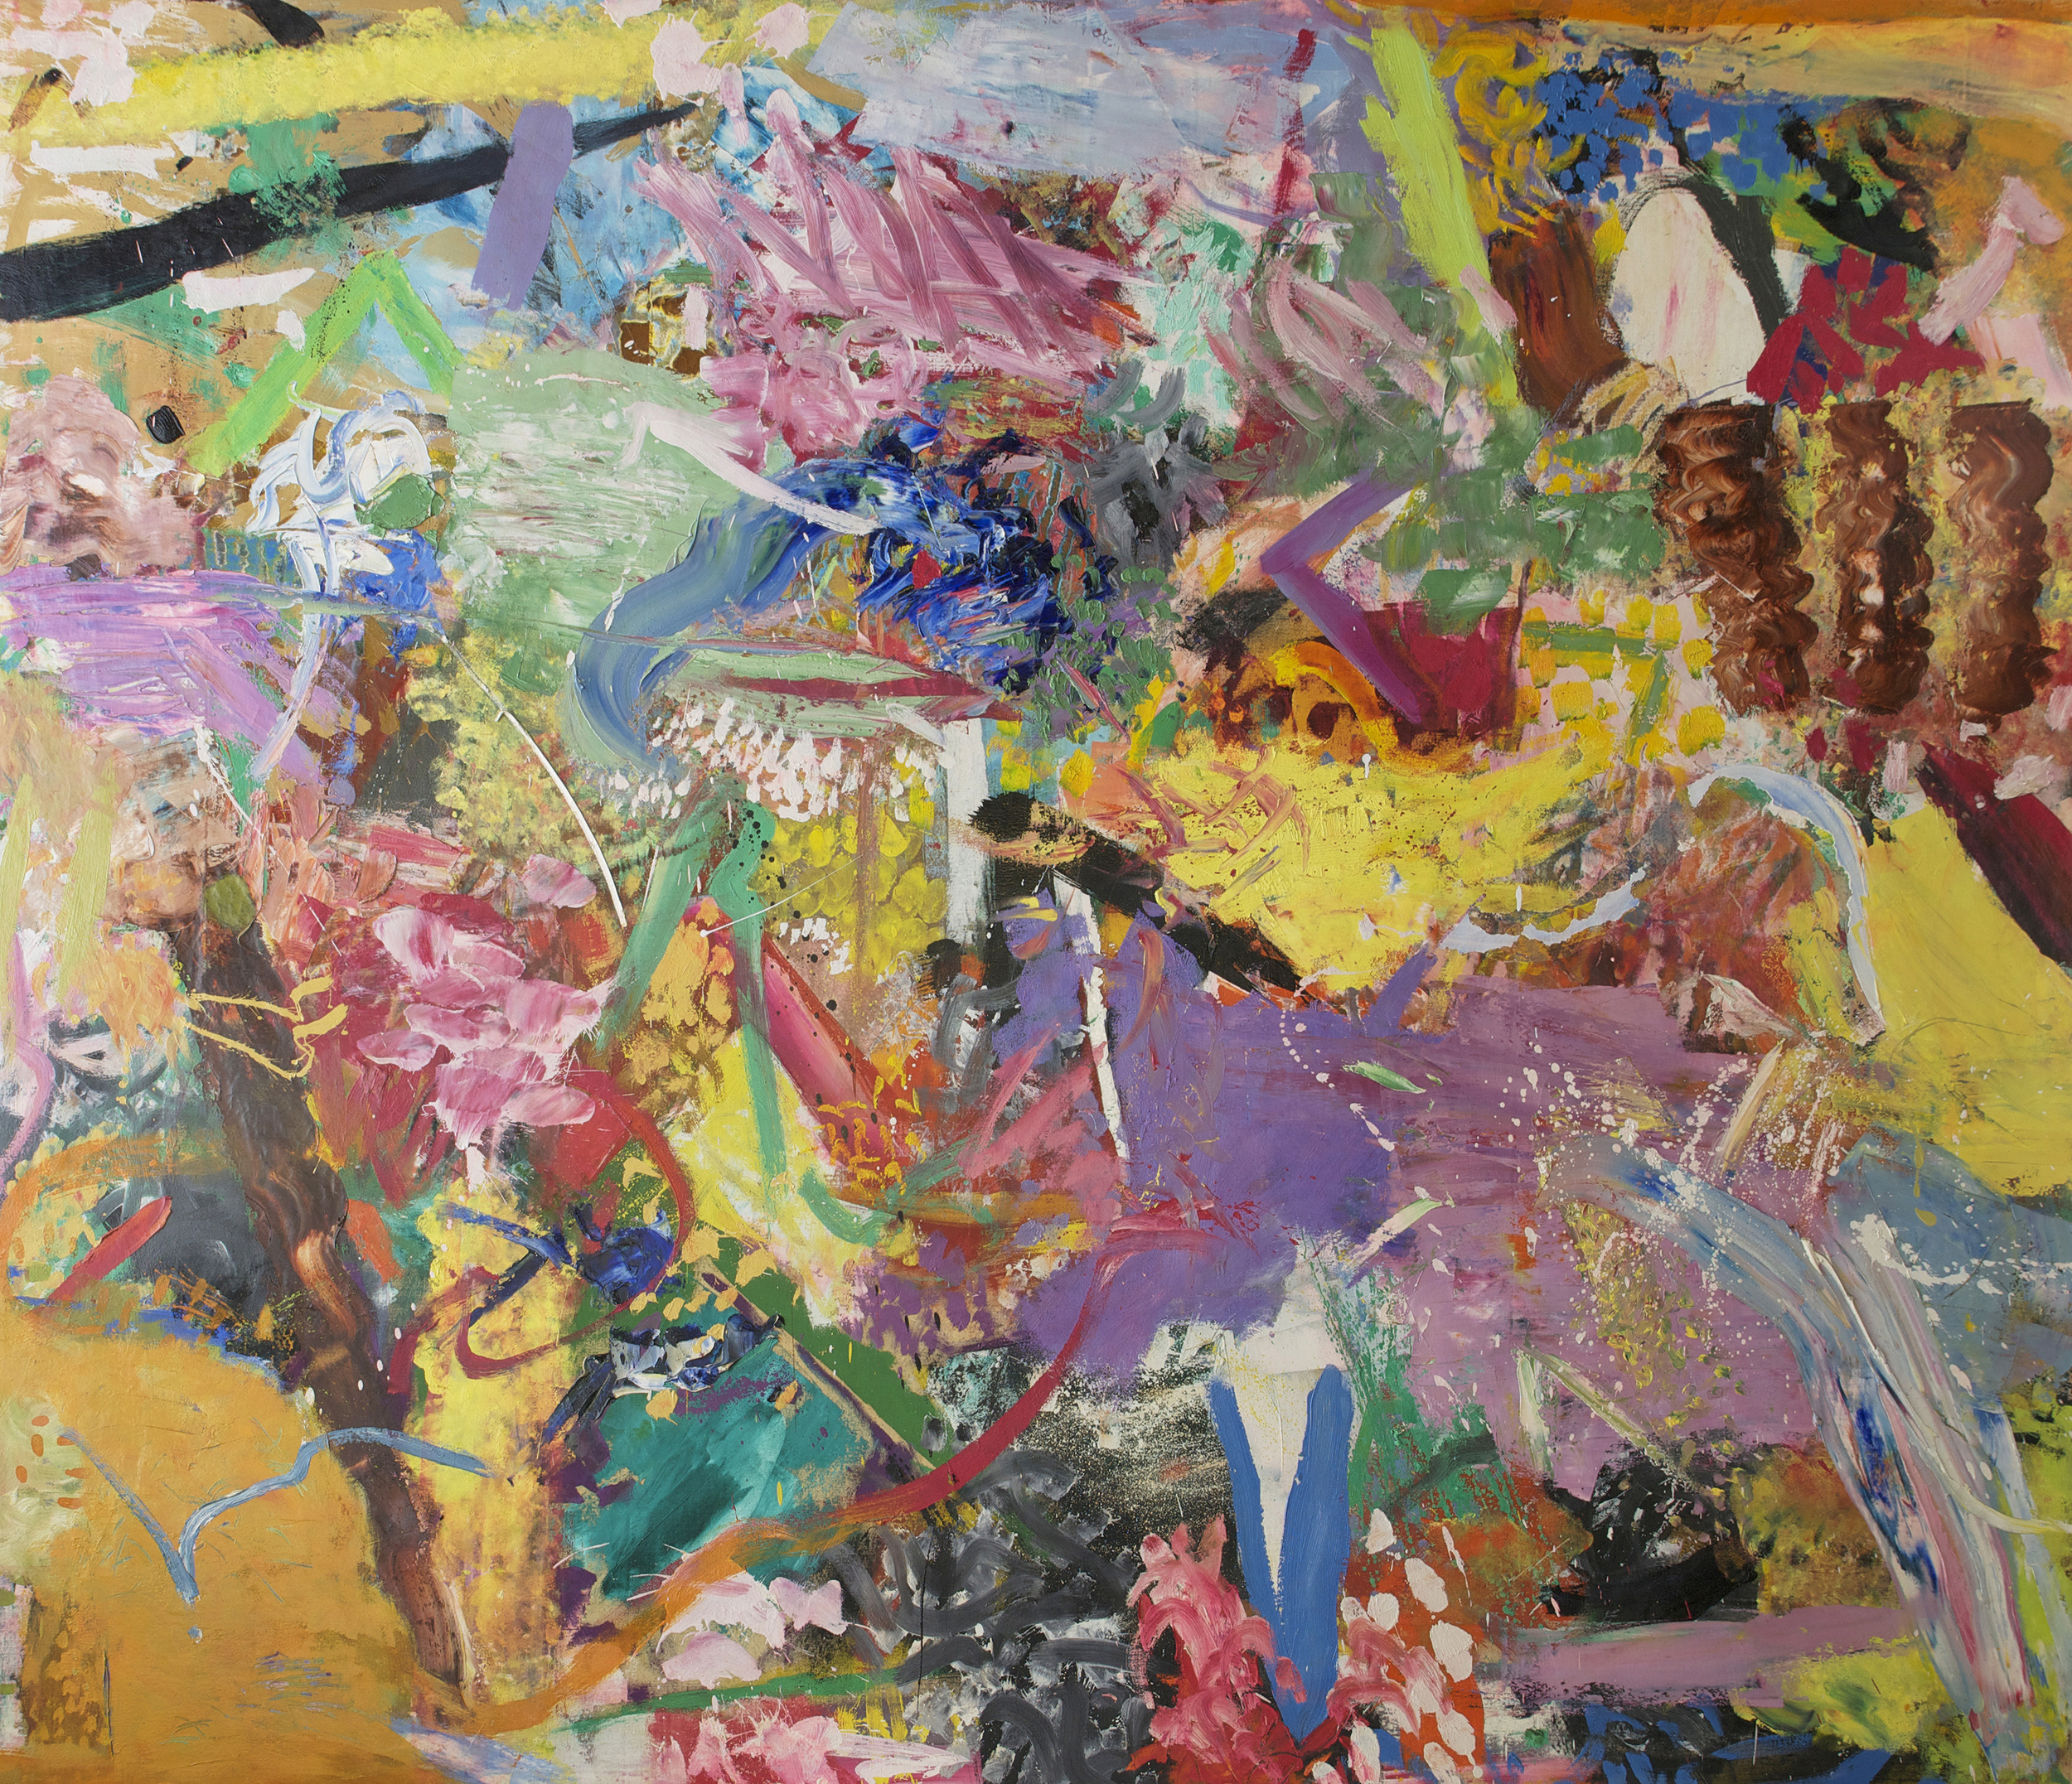 Untitled, 1957  , oil on canvas, 74 1/2 x 86 inches